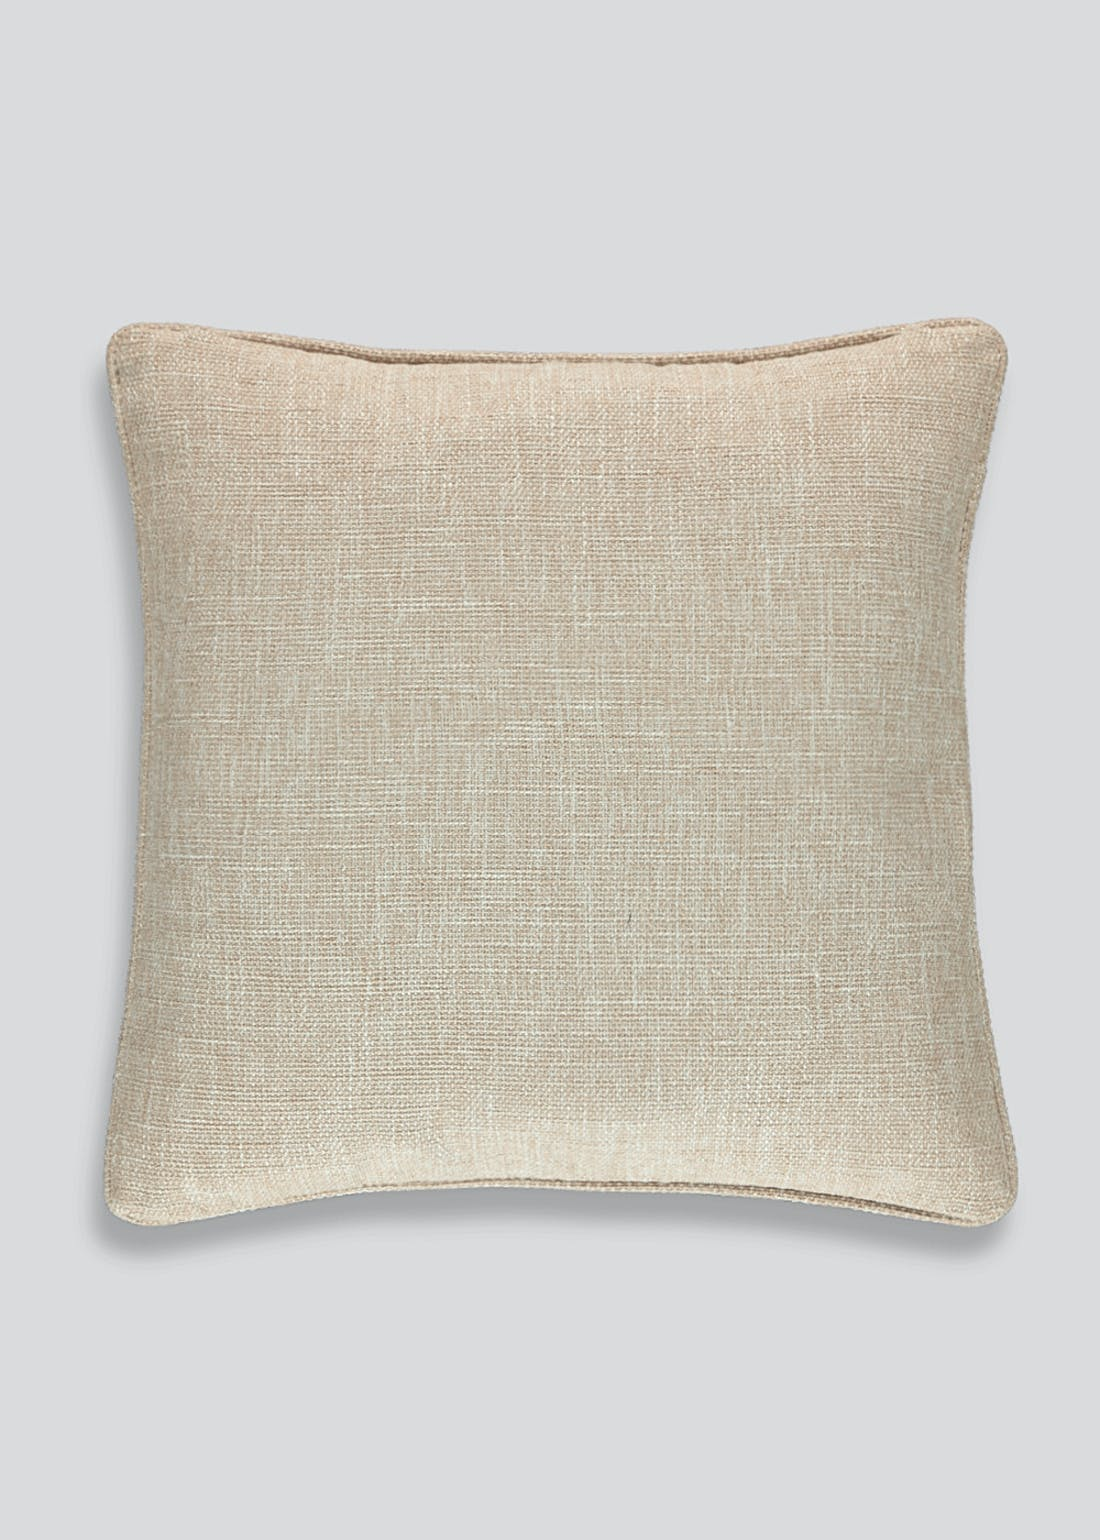 Textured Crosshatch Cushion (46cm x 46cm)